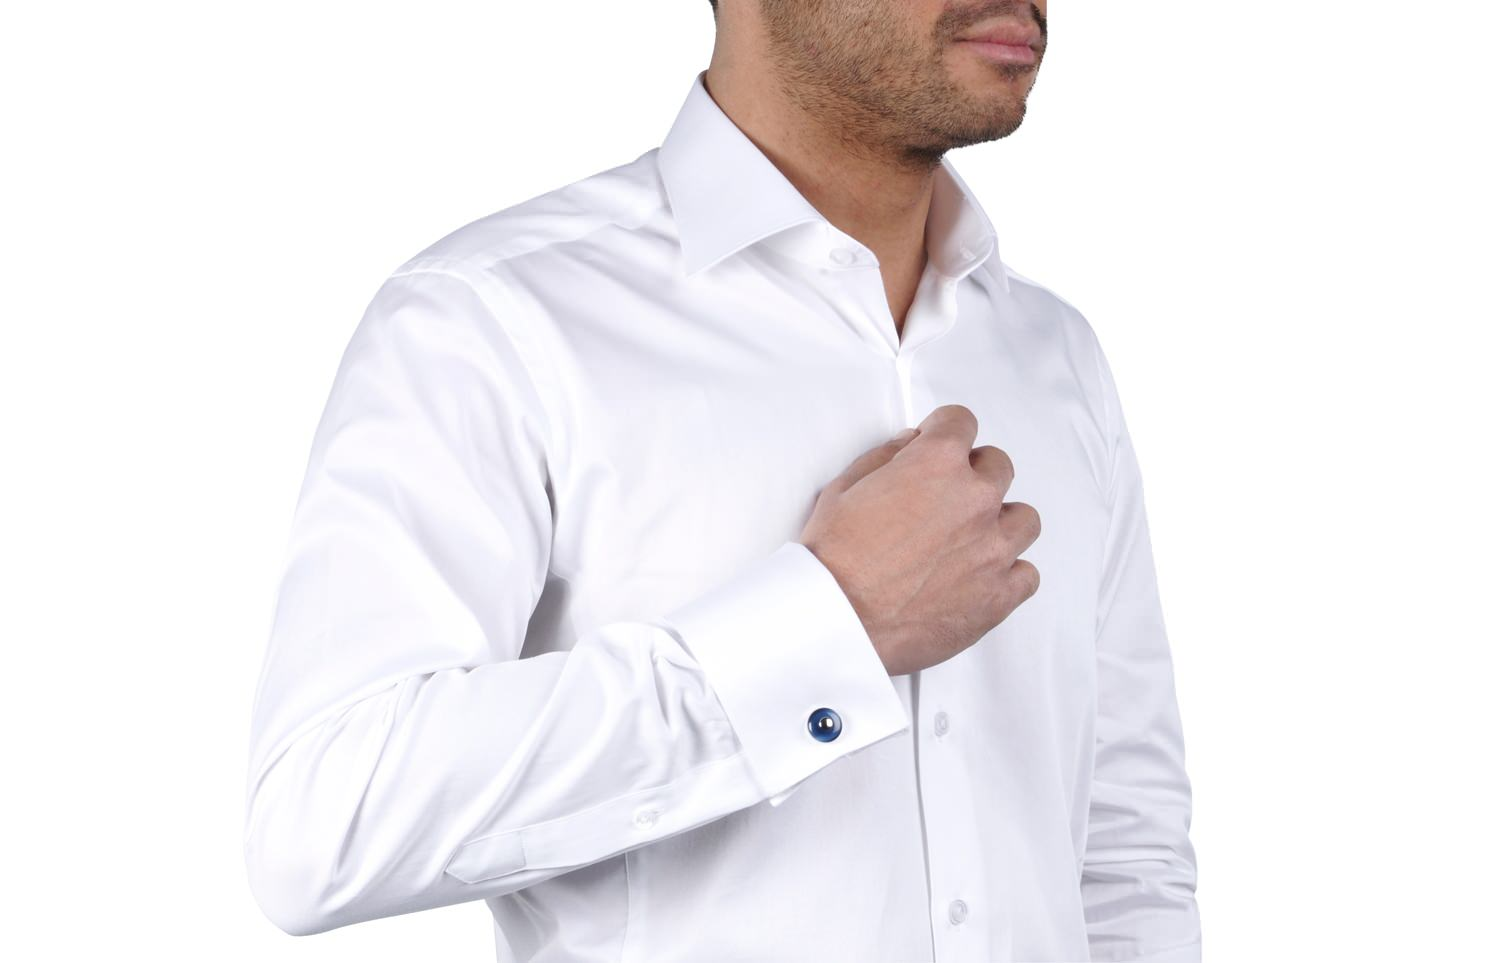 Mens jacket hs code - Mens Cotton White Plane Shirt With Full Sleeves Hs Code 62052000